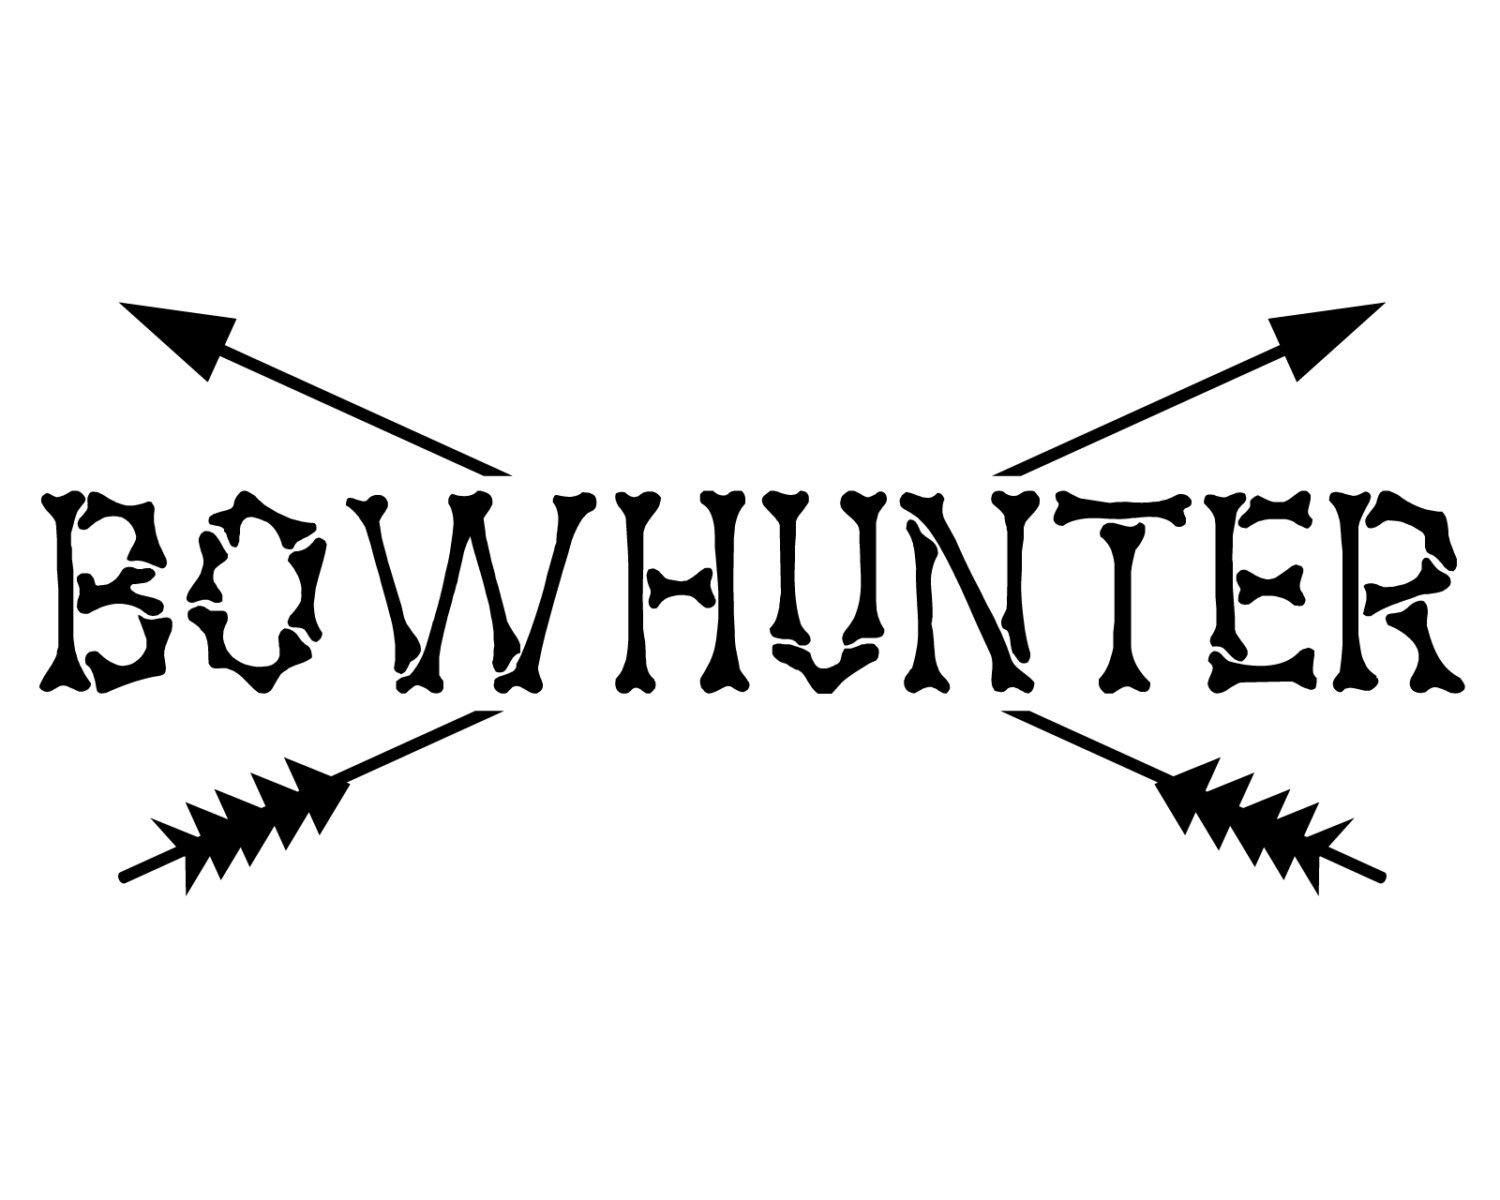 1500x1200 Bow Hunter Vinyl Decal Bow Hunting Sticker Bowhunter